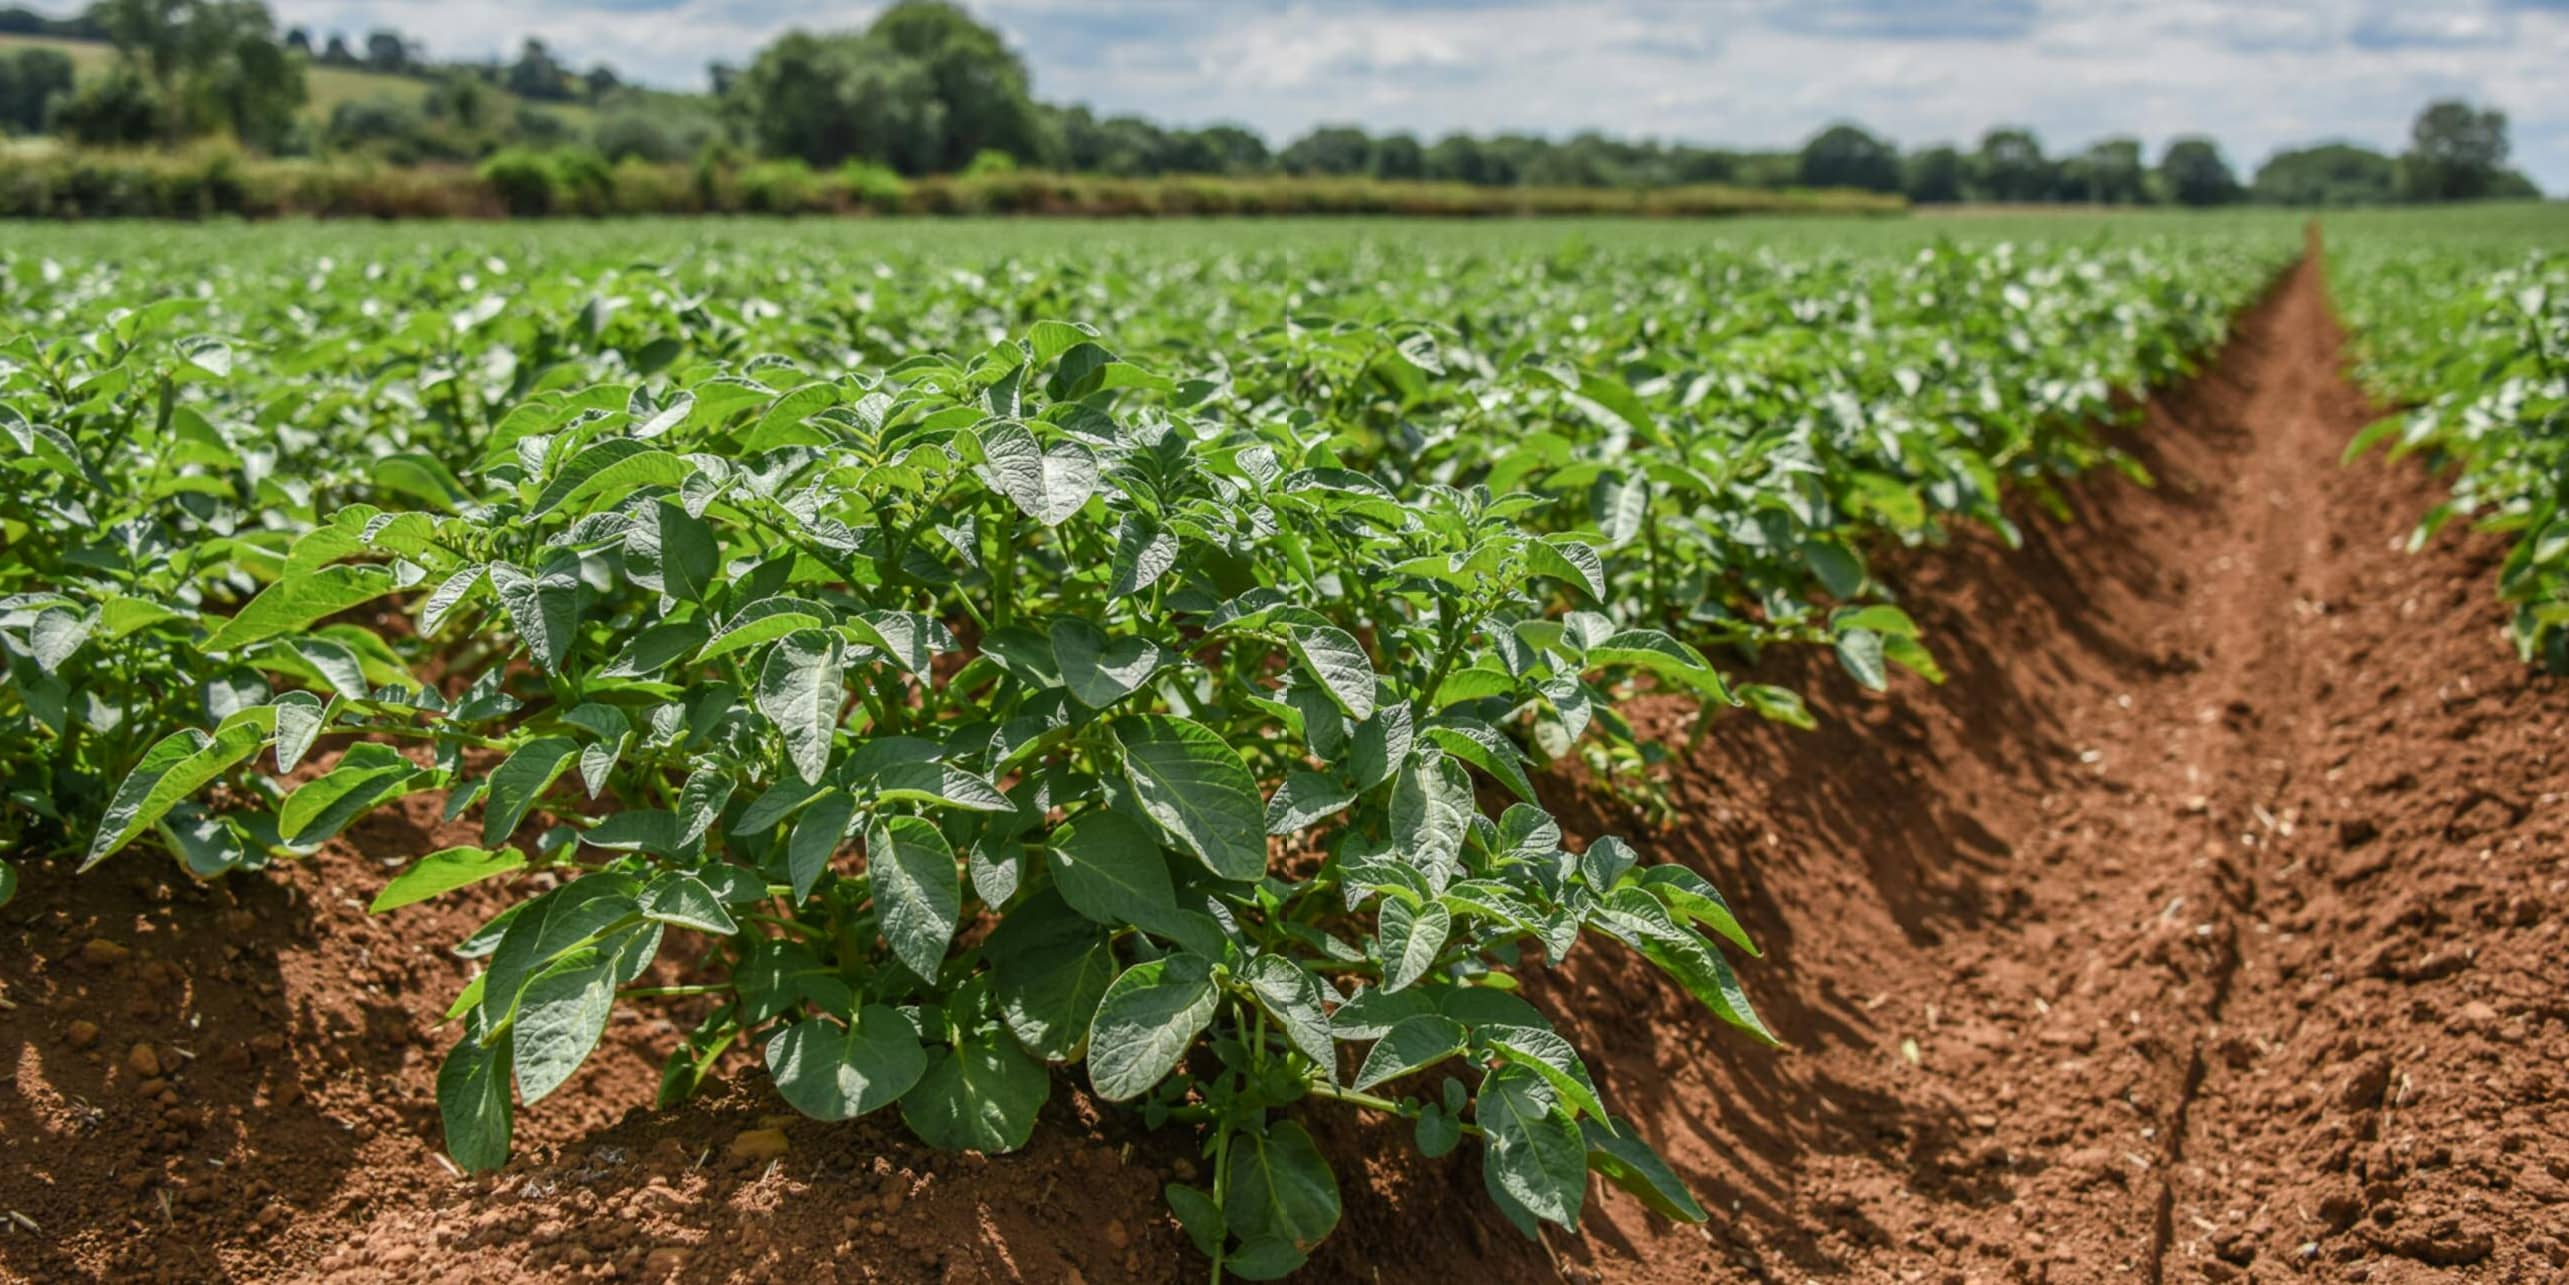 Changing weather pattern puts potato growers on high alert for blight